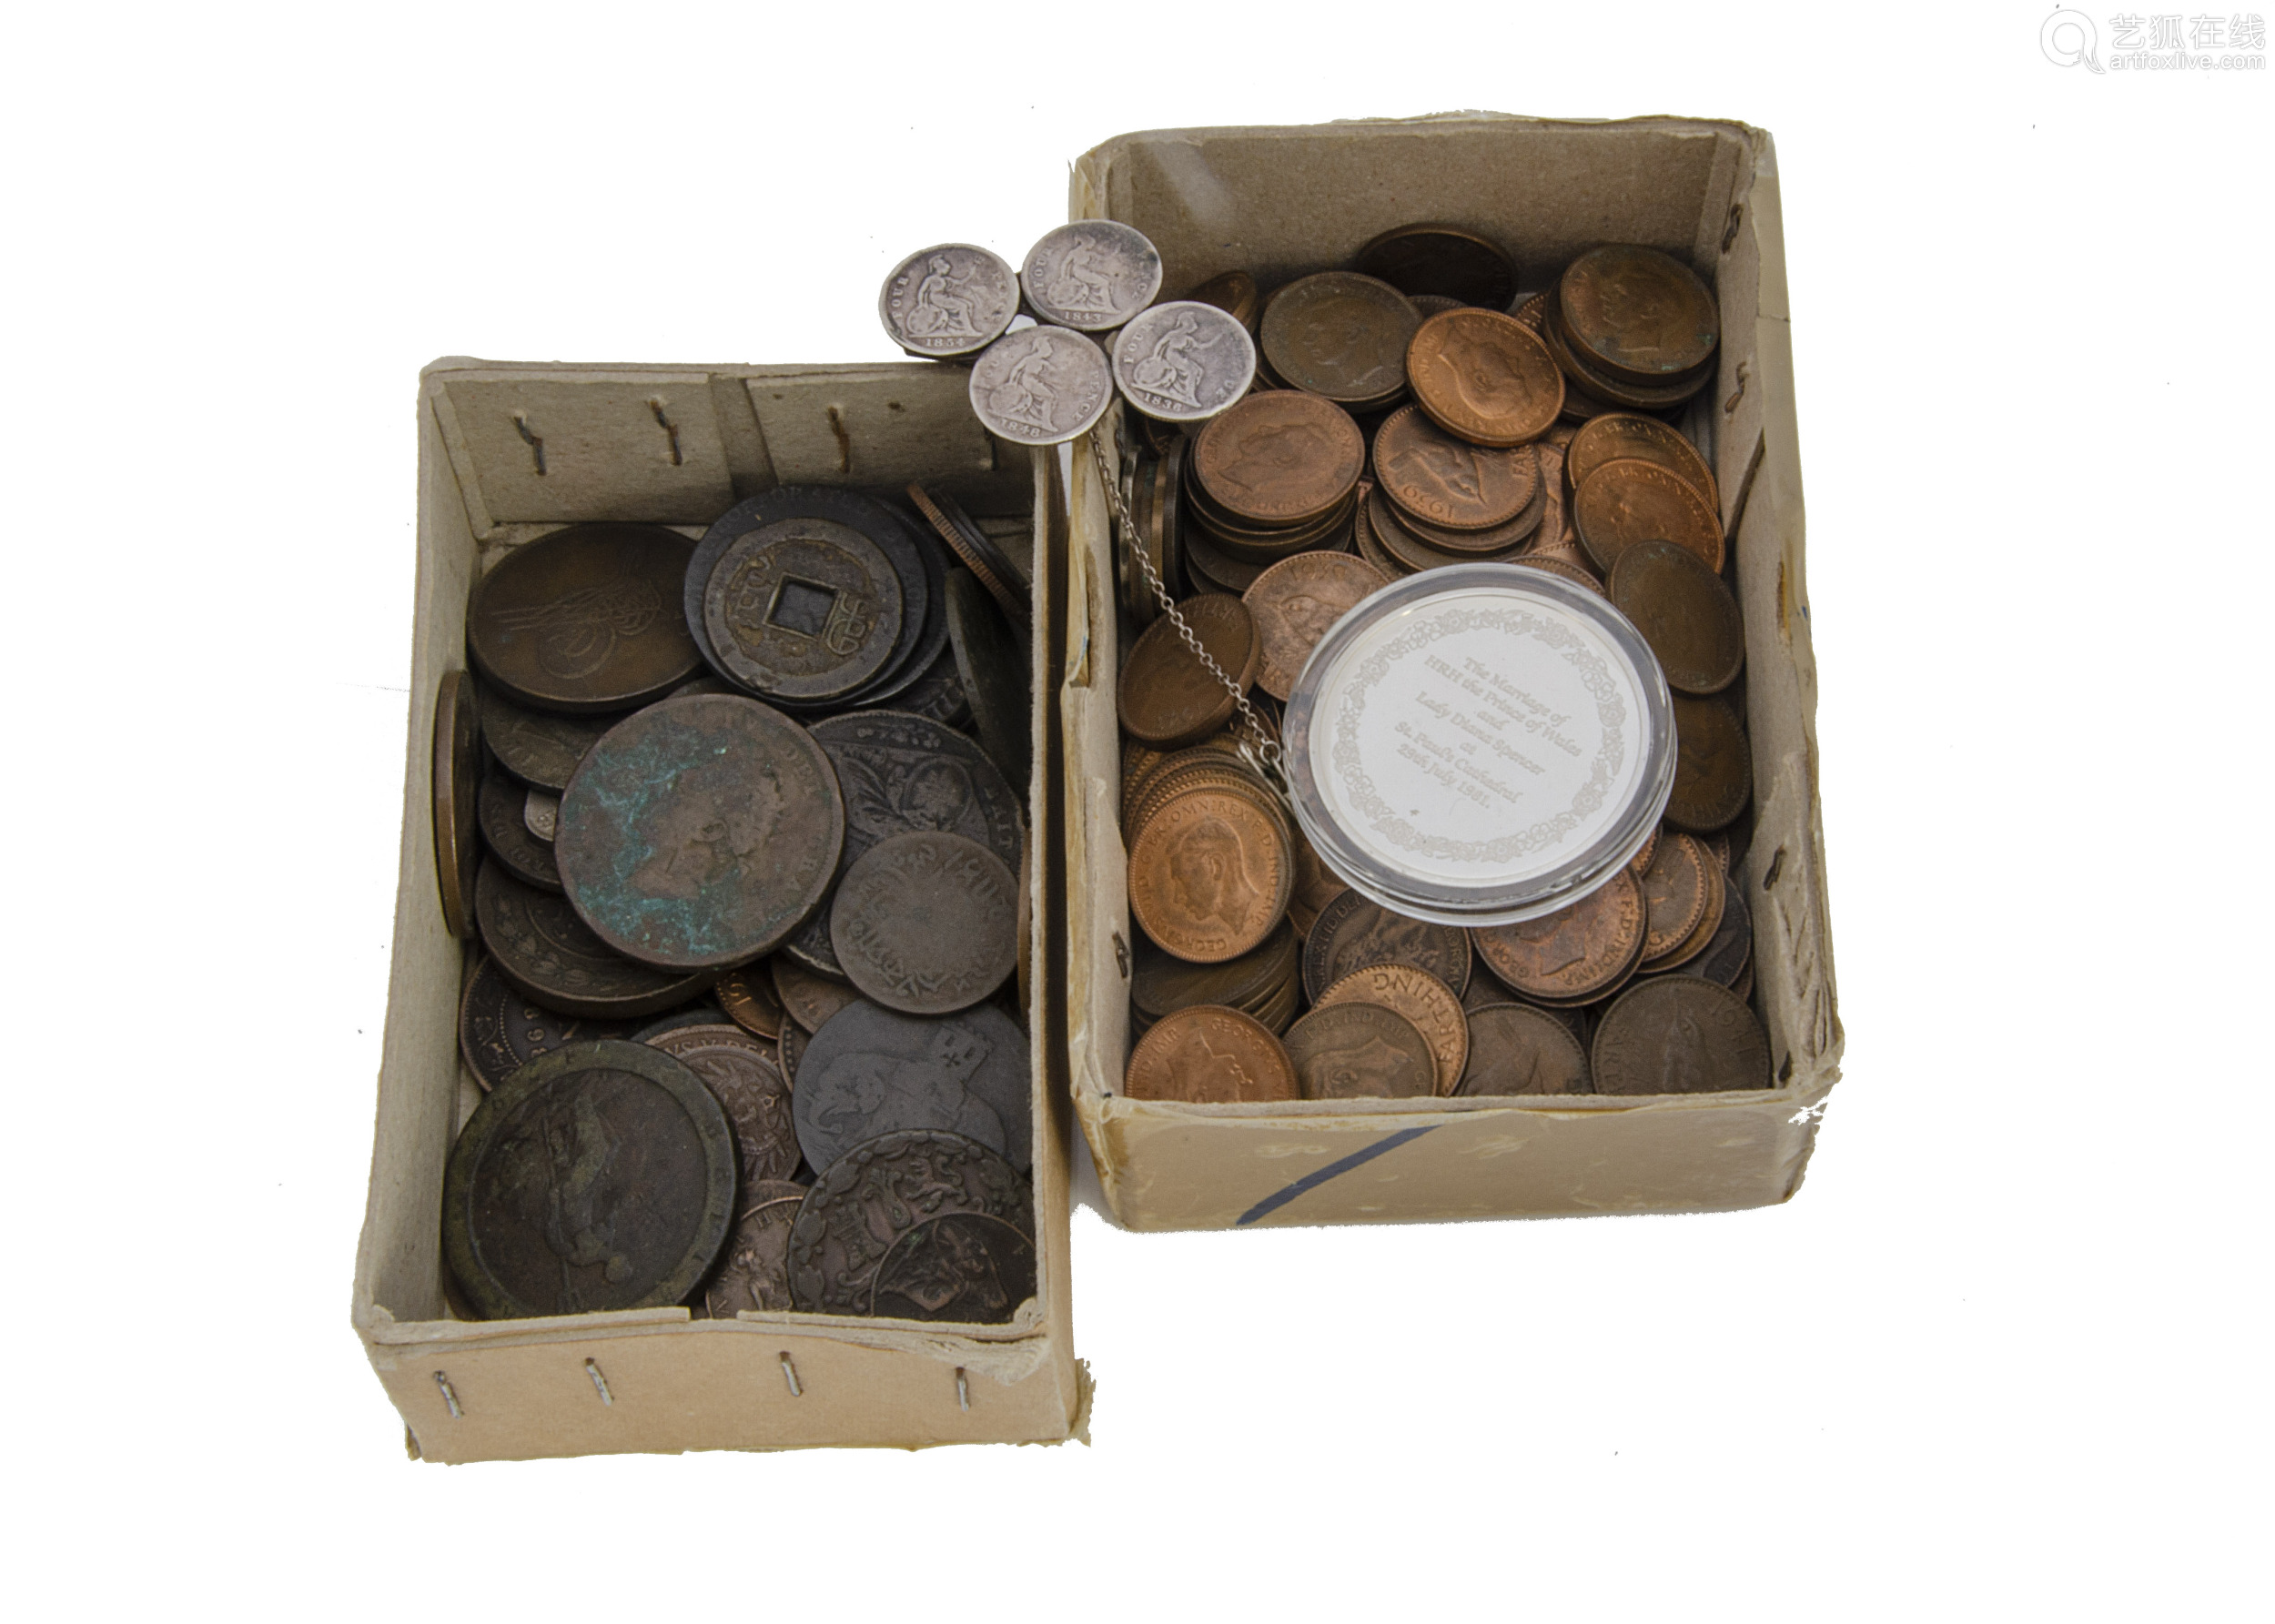 A small collection of coins, including a silver 1981 Charles & Diana commemorative medallion, and